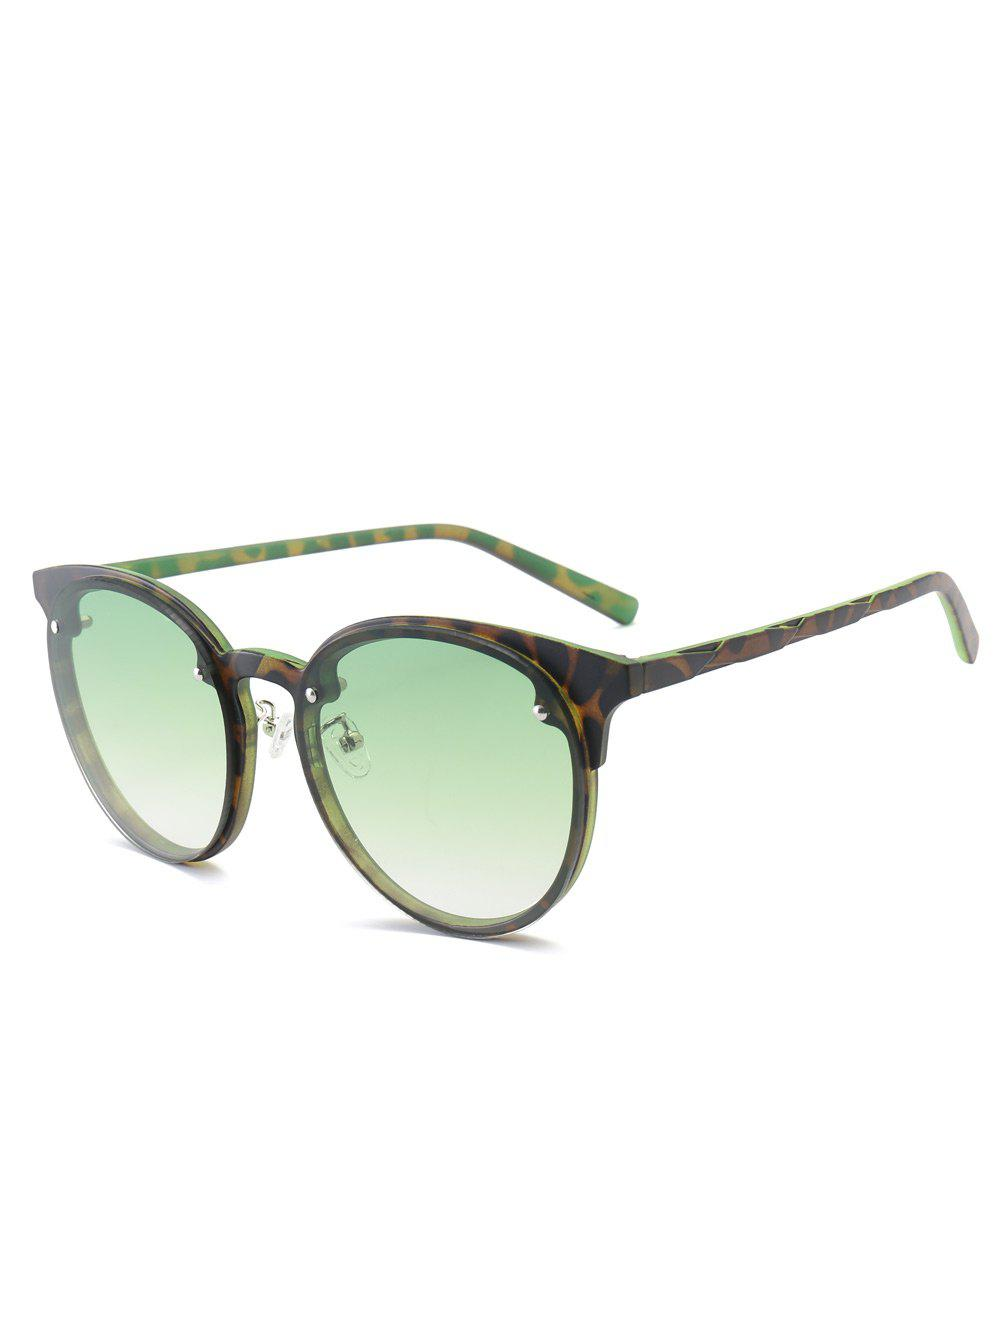 Buy Ombre Anti UV Sunglasses